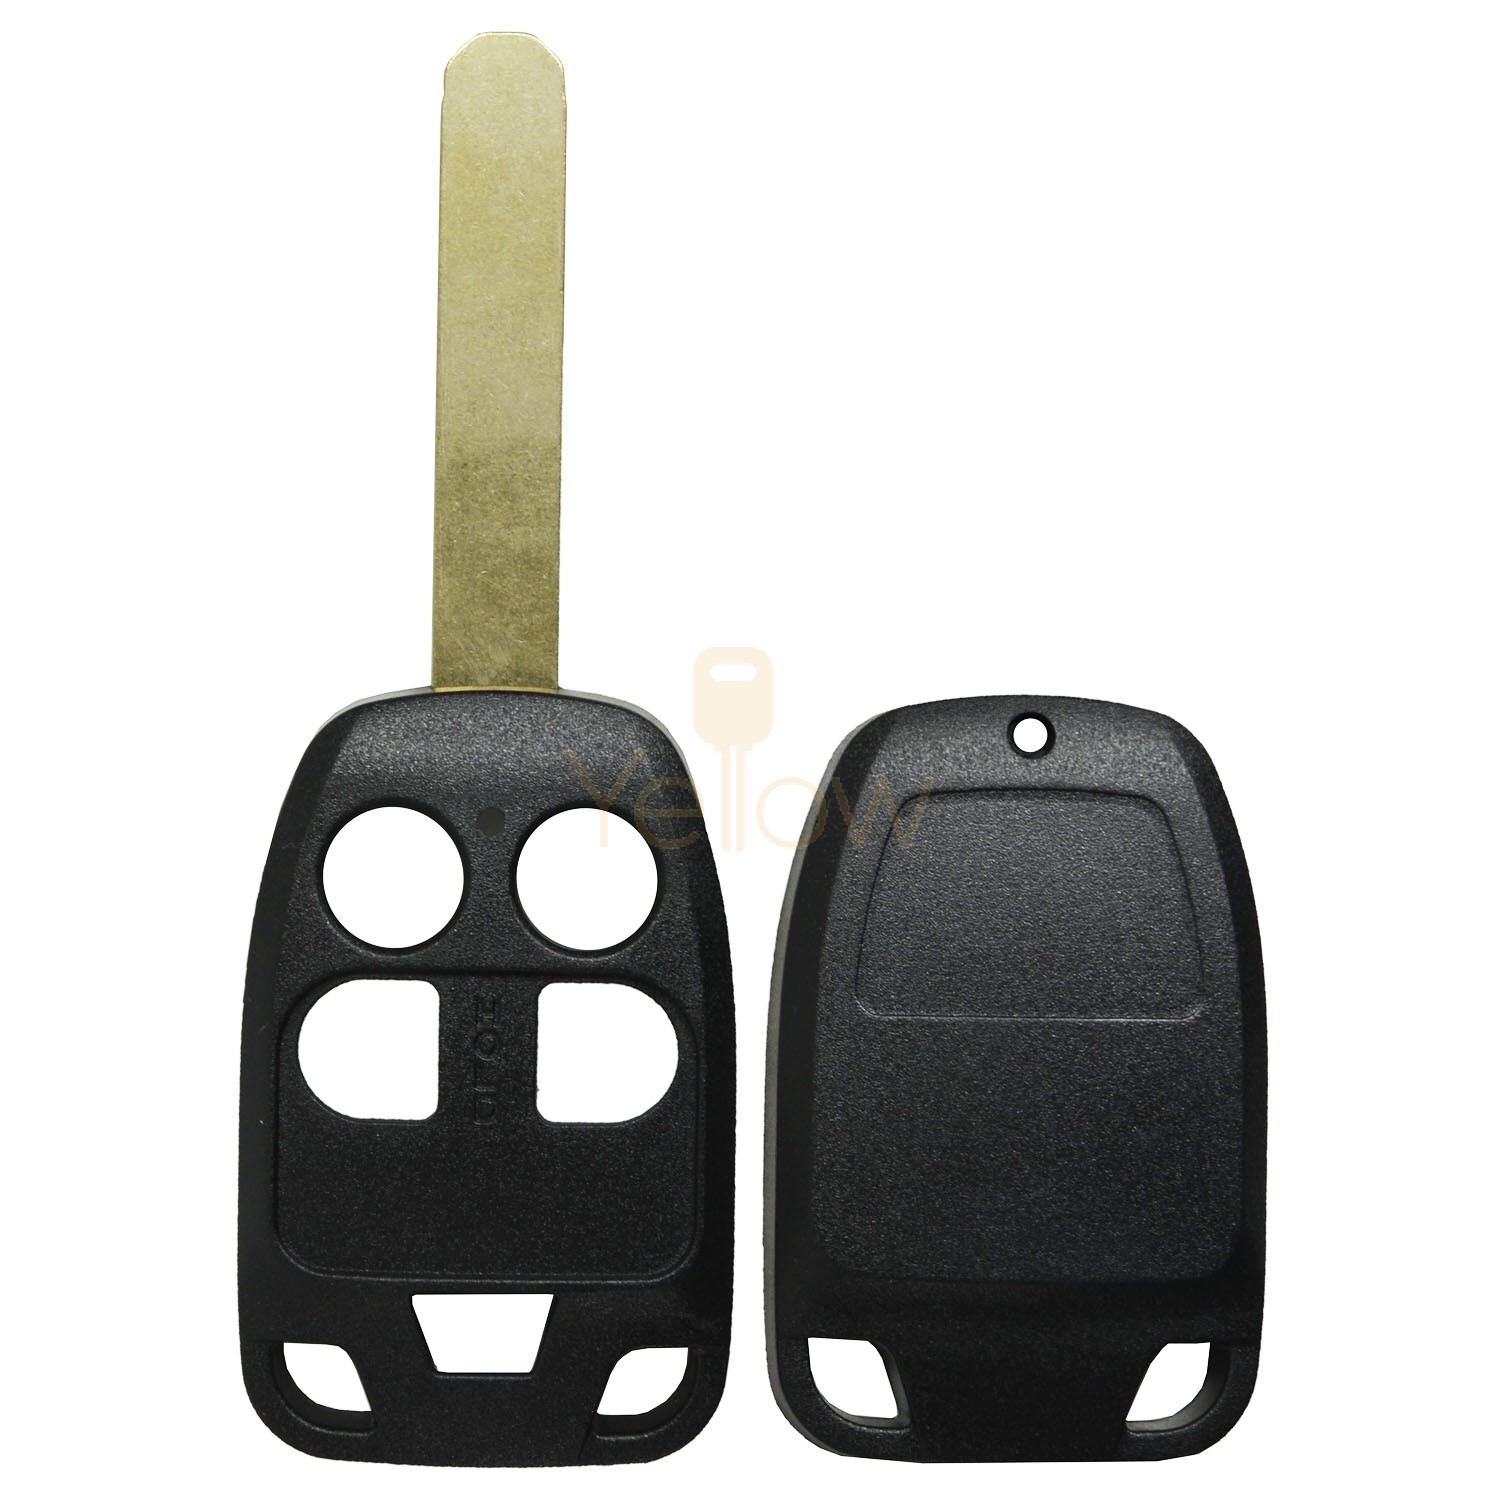 HONDA REMOTE HEAD KEY SHELL 5 BUTTON